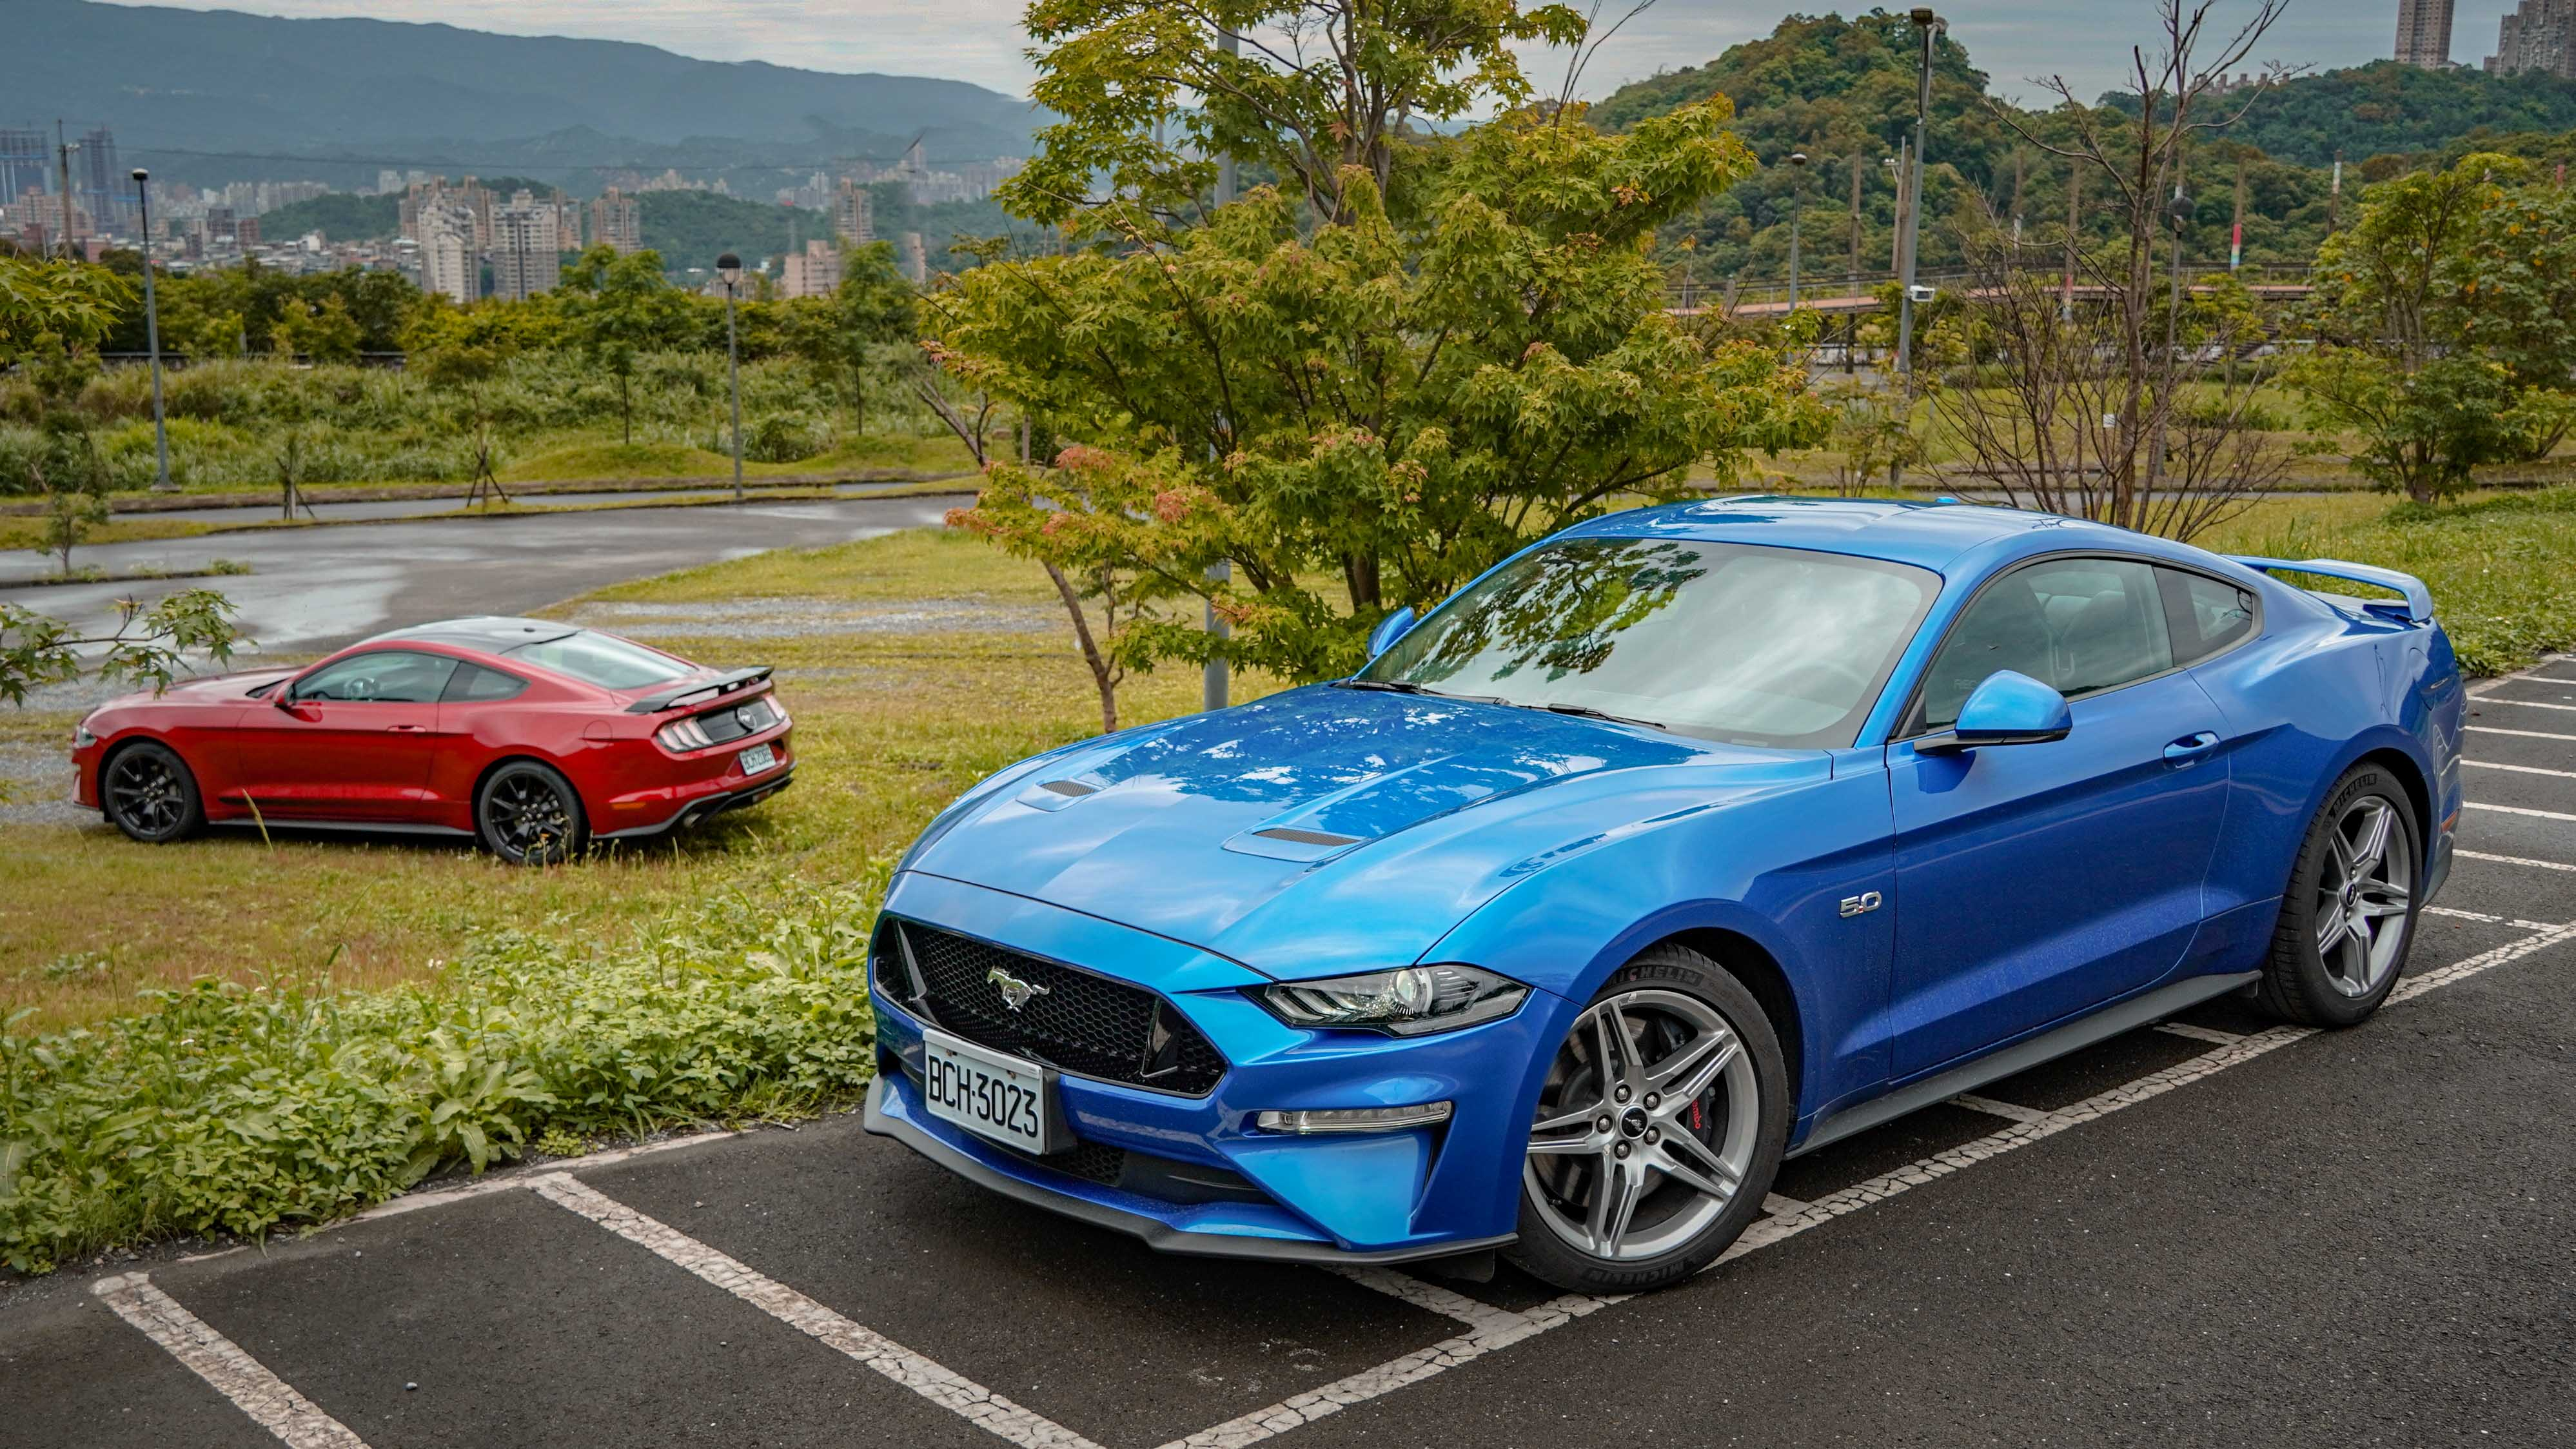 Ford MustangBlack Shadow Edition (紅)售價 199.9 萬元。Ford Mustang GT Premium 售價 243.9 萬元。